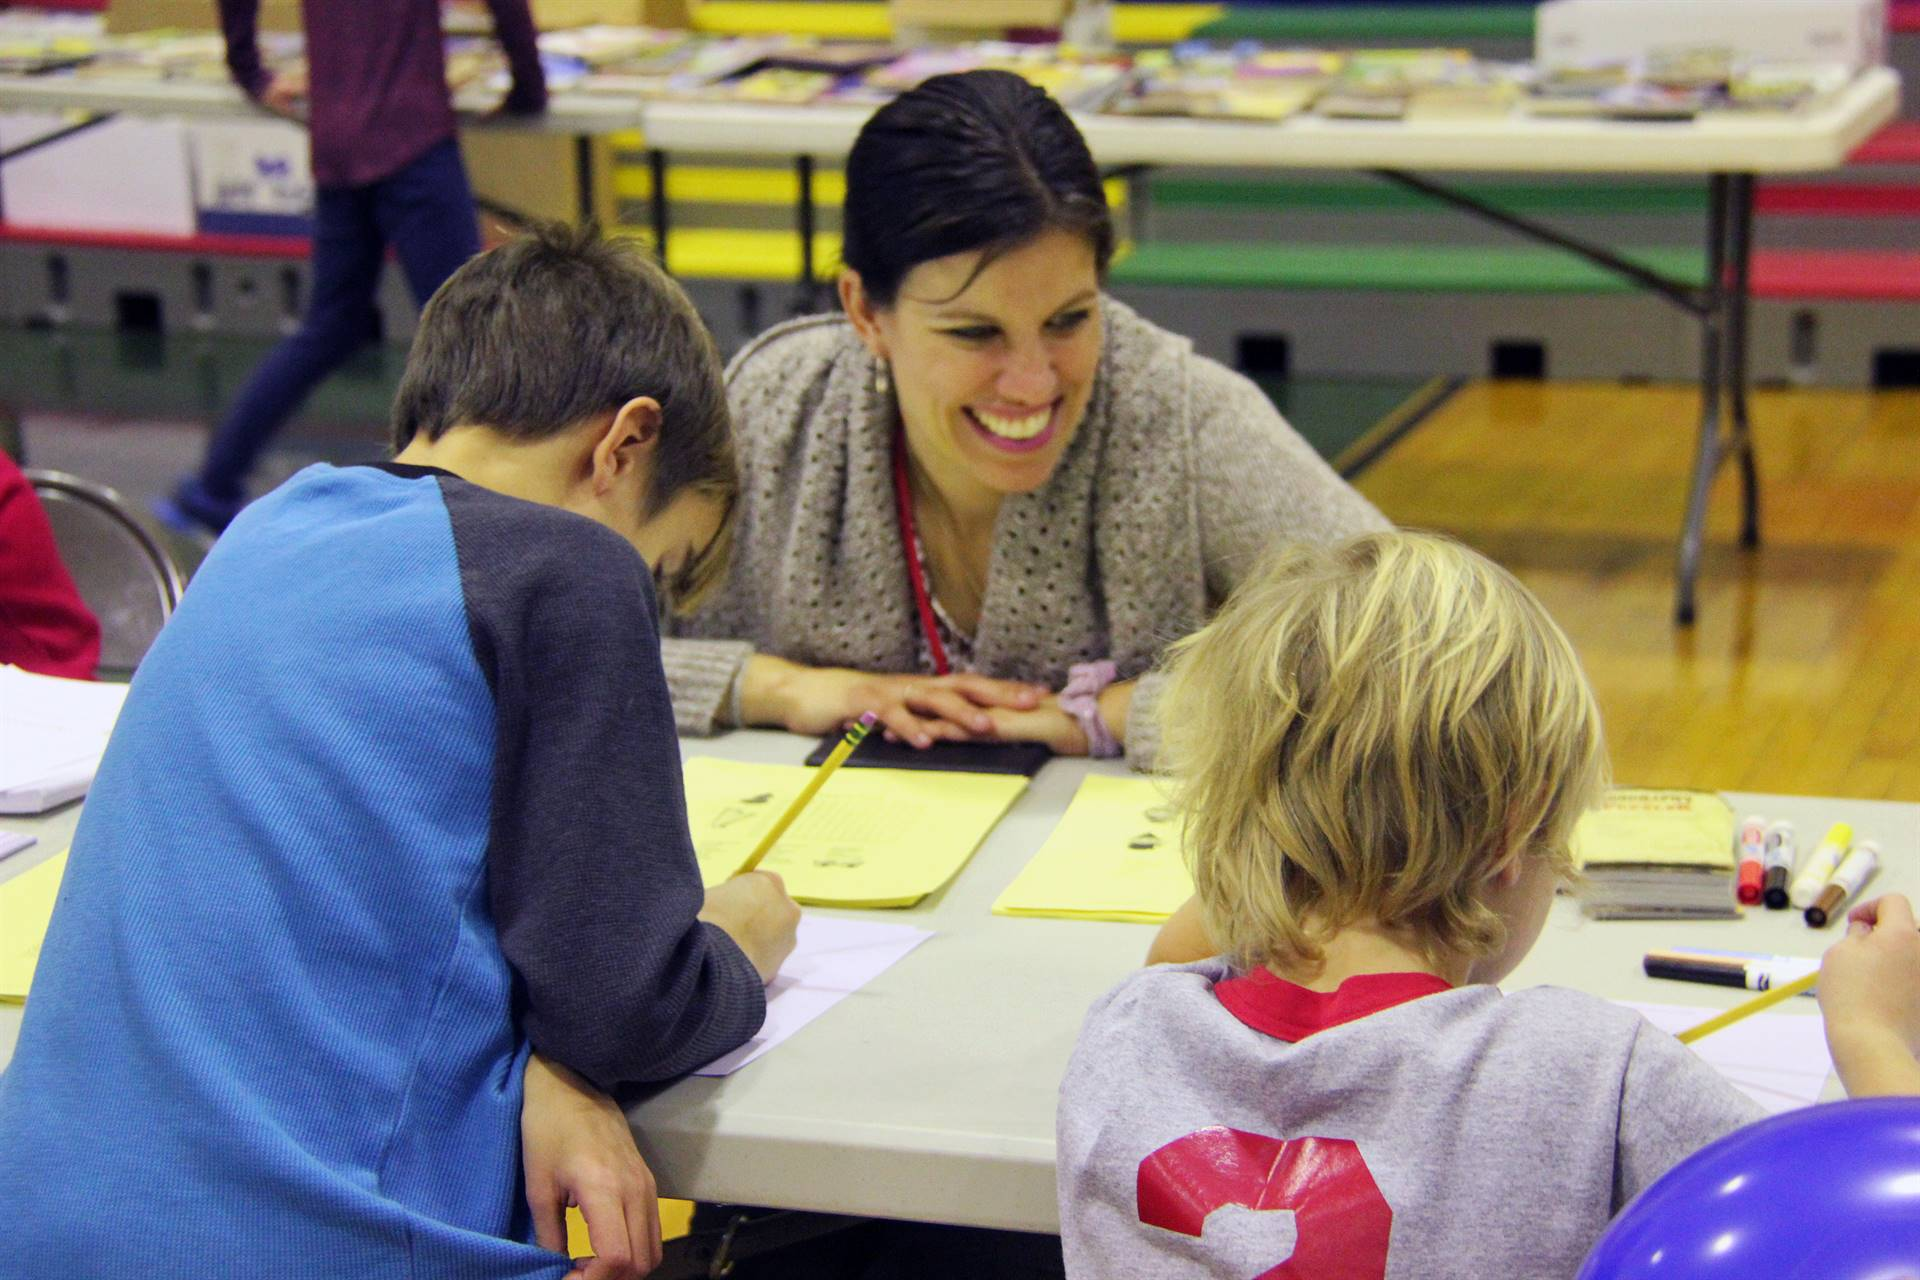 two students and adult at activity station